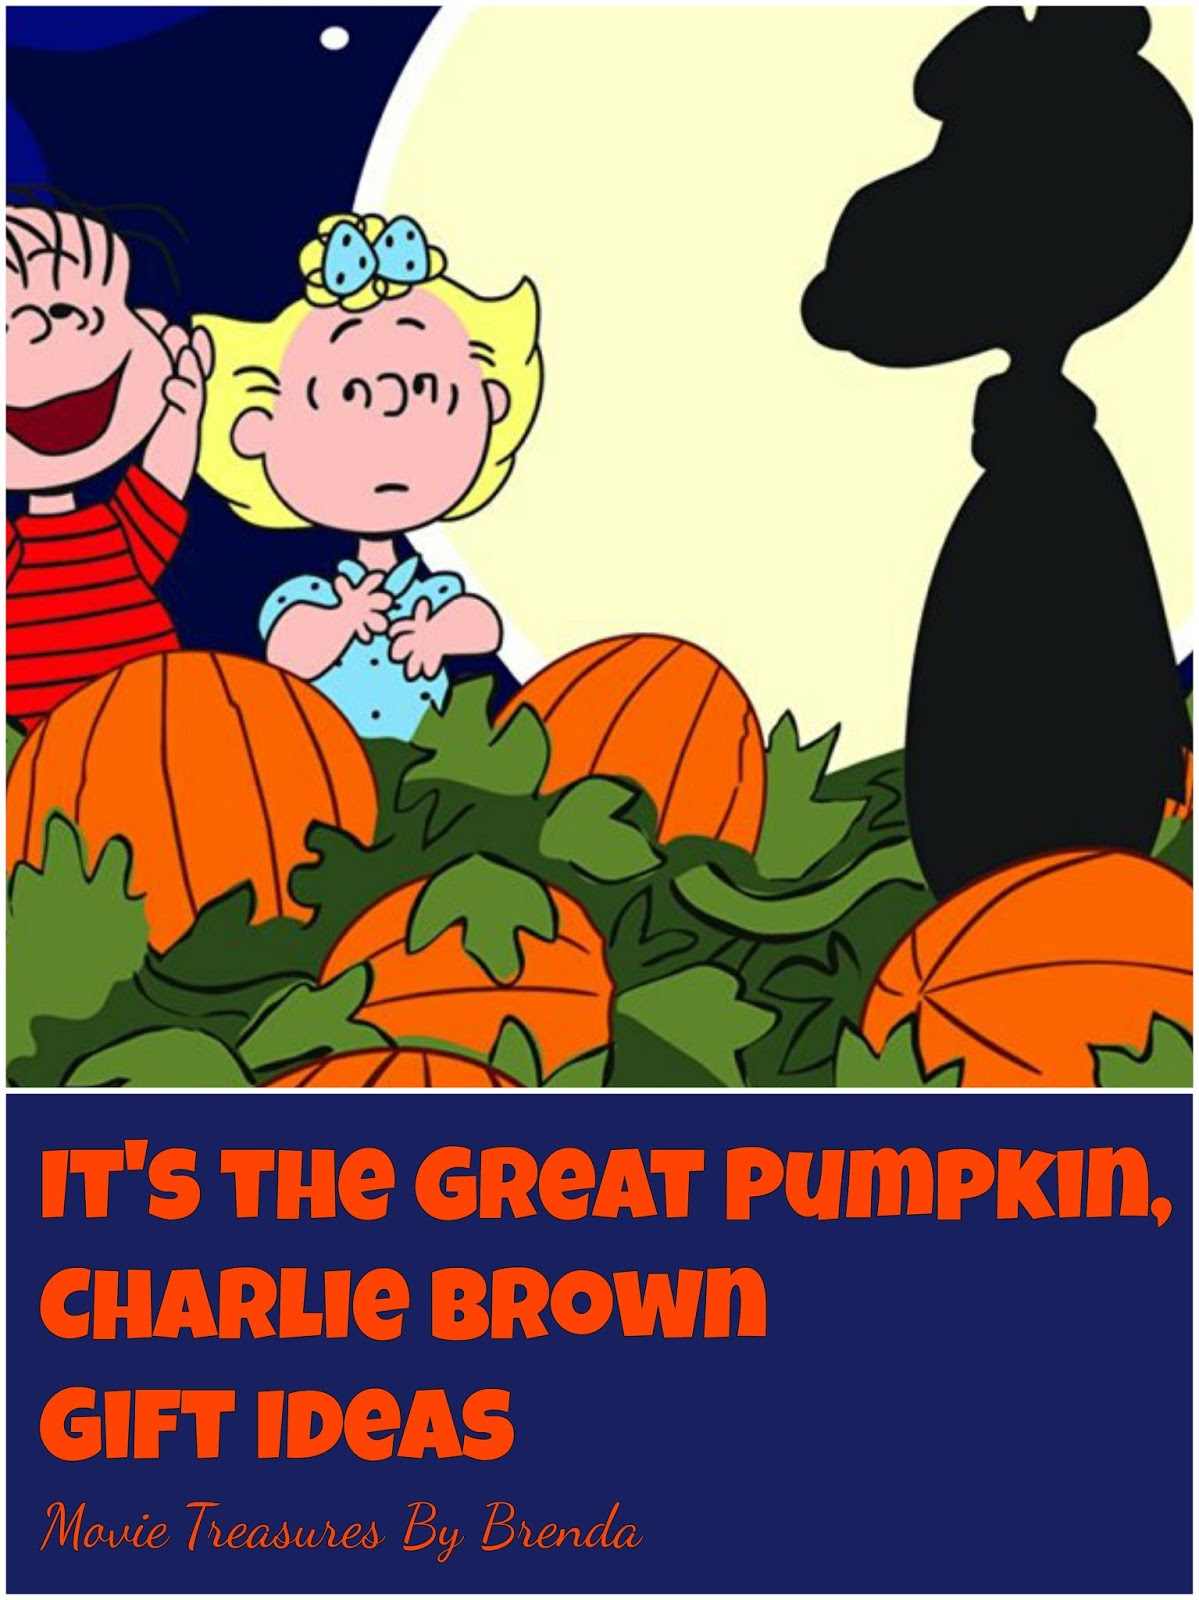 Movie Treasures By Brenda It S The Great Pumpkin Charlie